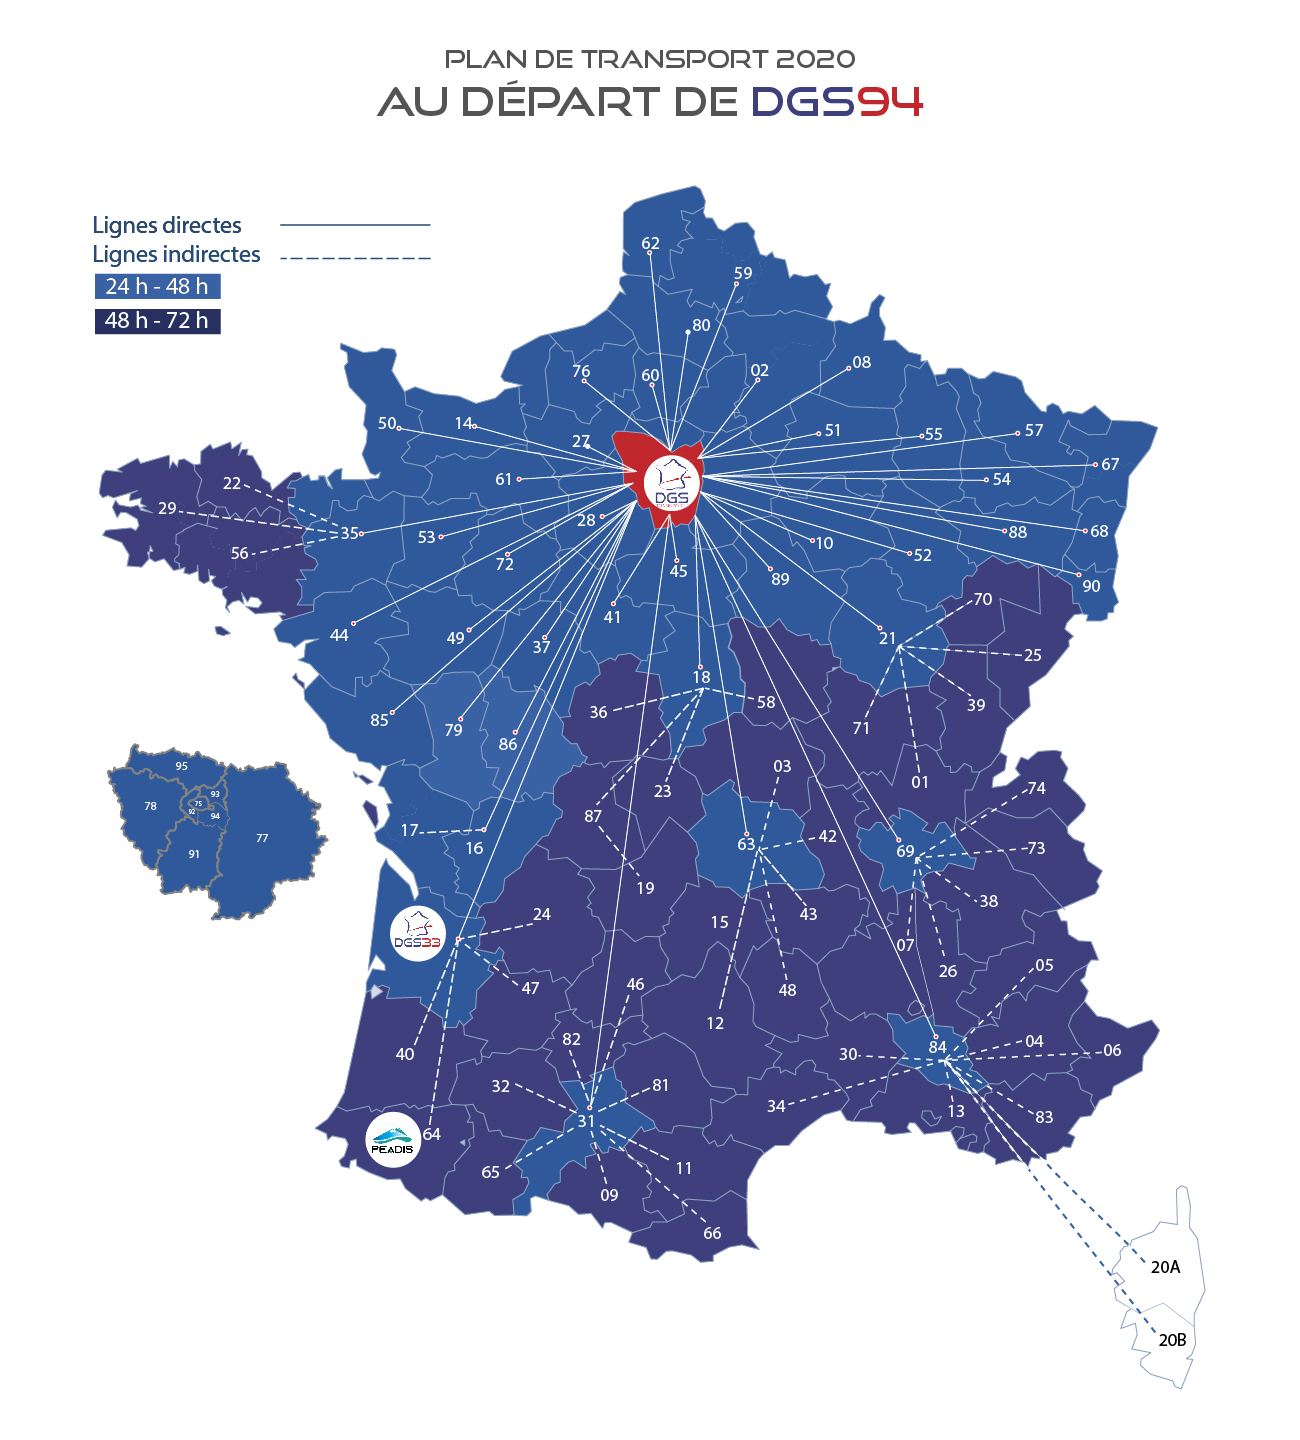 messagerie france plan de transport 2020 DGS